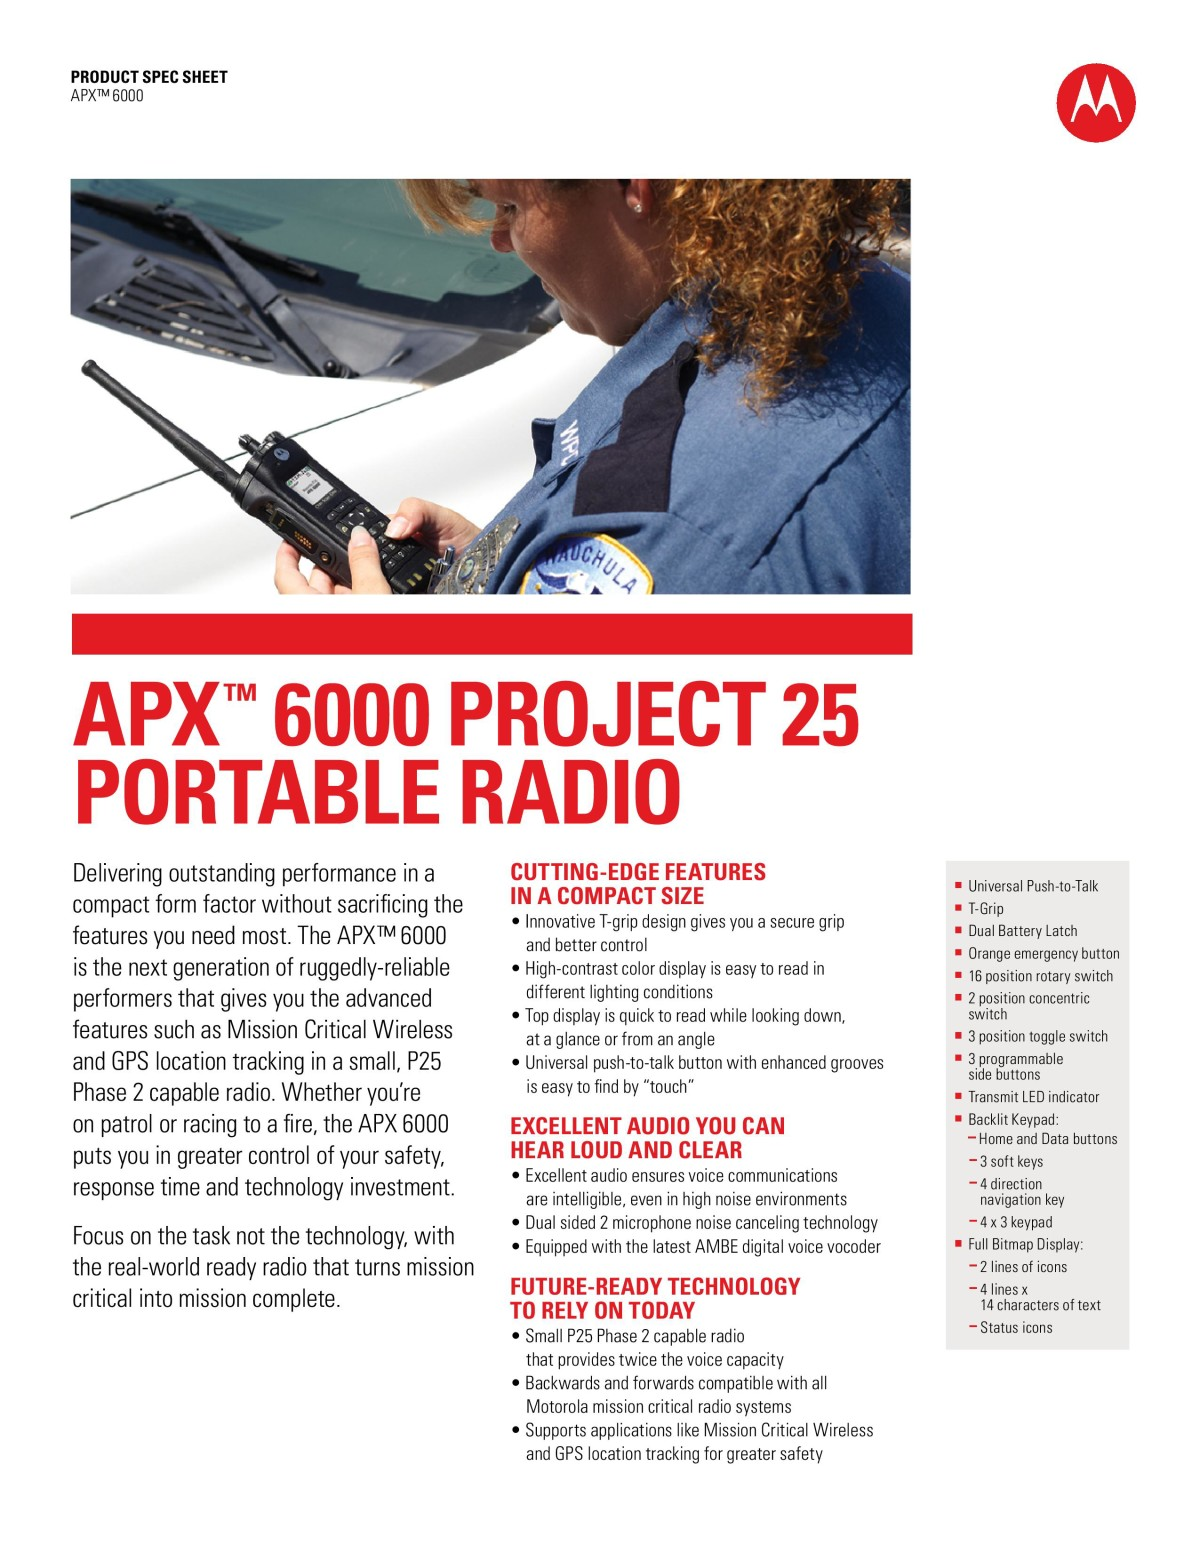 Apx6000 Project 25 Portable Radio